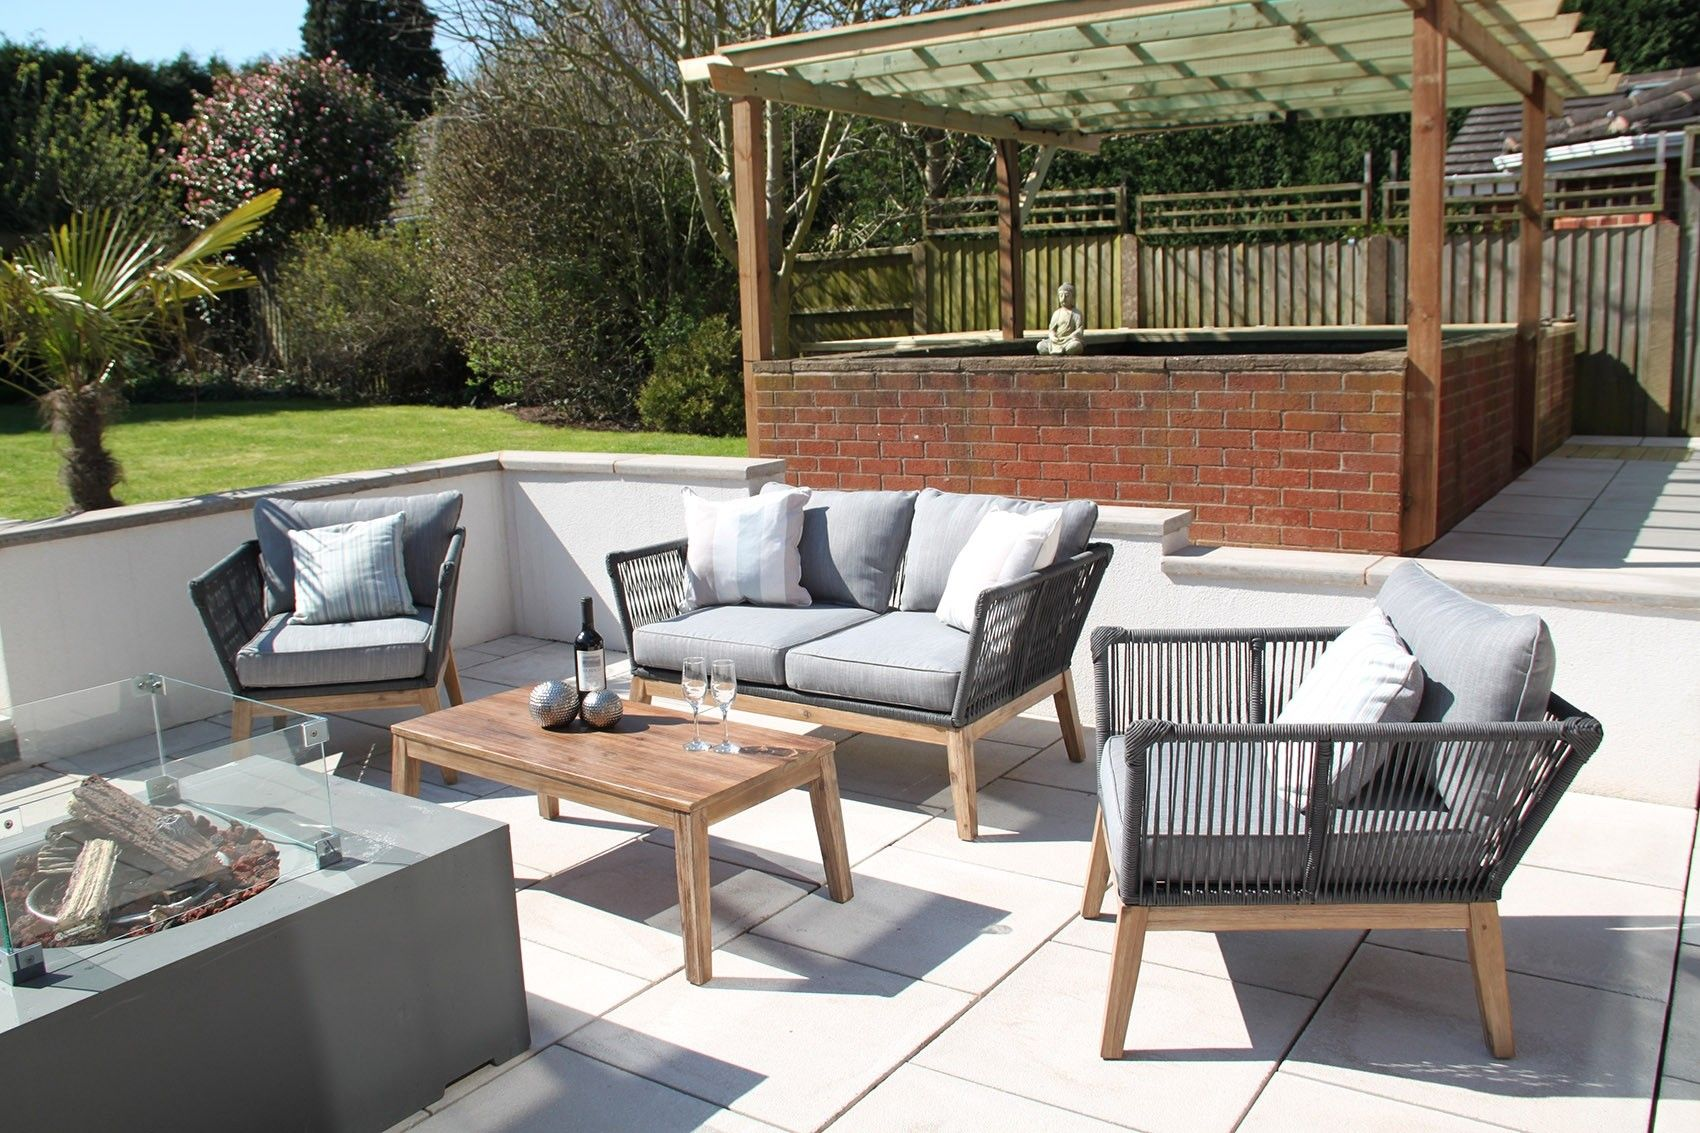 P The Canterbury Florida Rope 4pc Garden Sofa Set Offers A Beautiful Blend Of Contemporary And Retro Designs Garden Sofa Set Garden Sofa Furniture Sofa Set